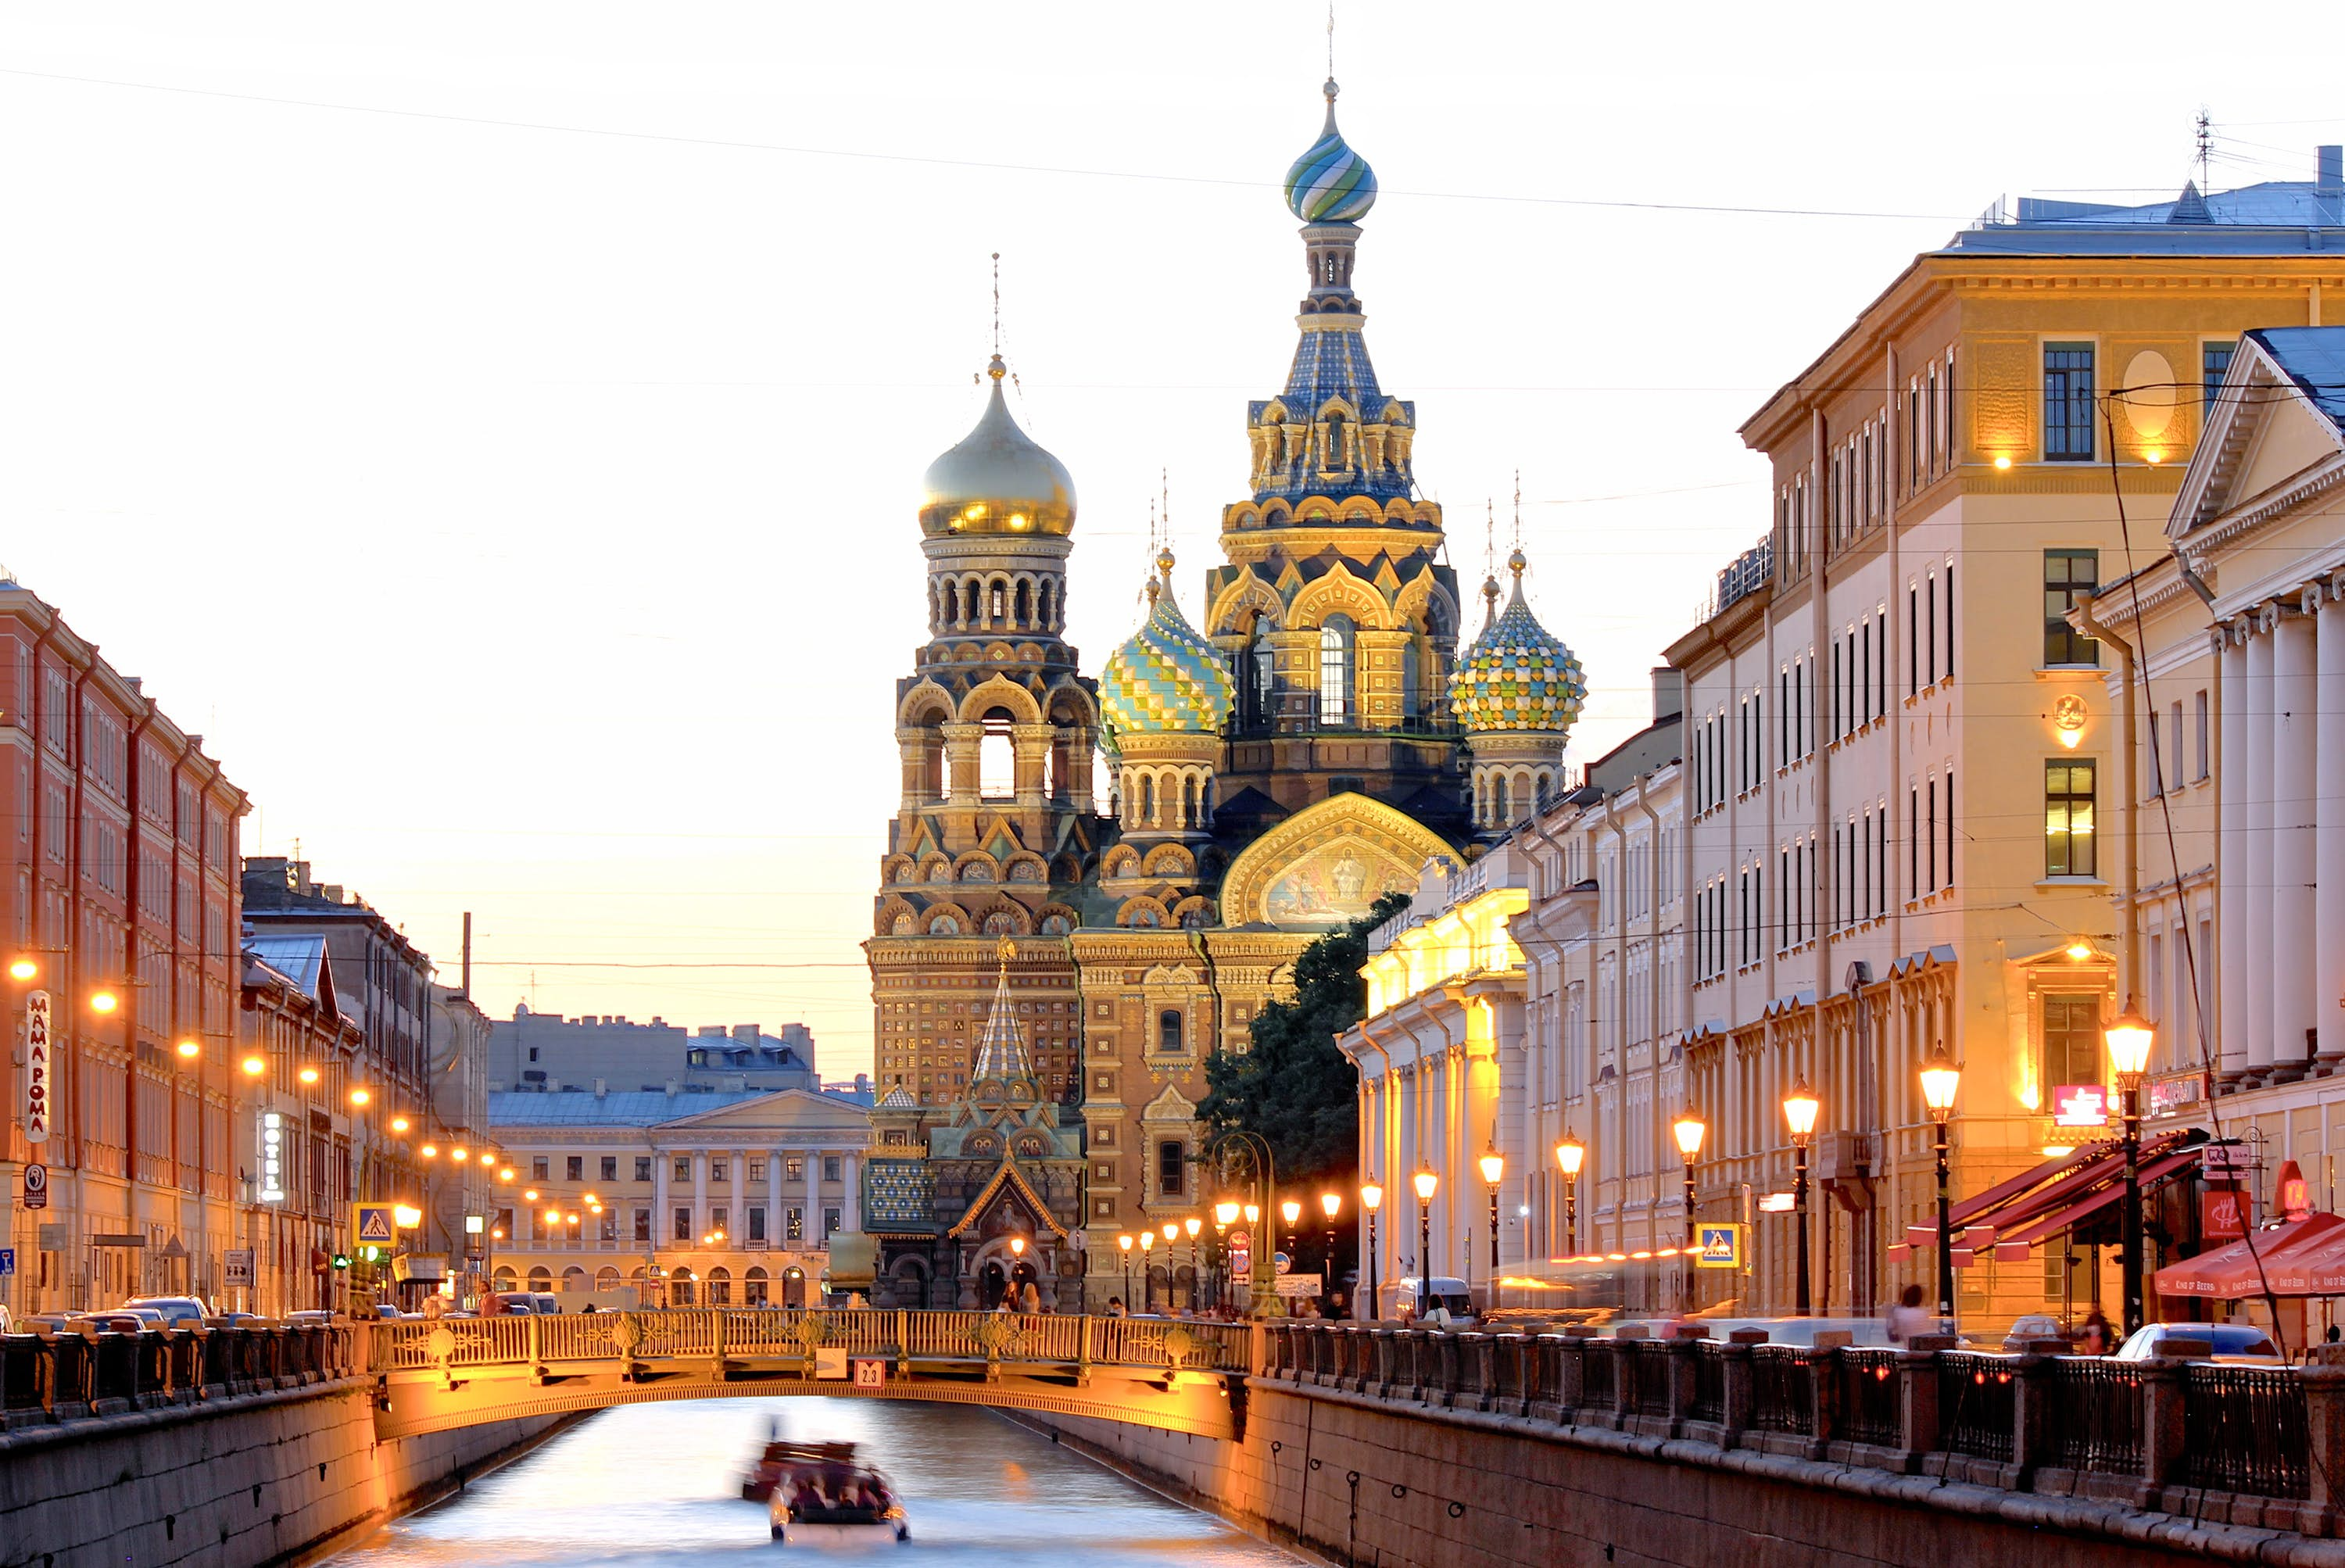 The splendour of St Petersburg's canals and churches testifies to its past as a seat of empire © Rickson Liebano / Getty Images